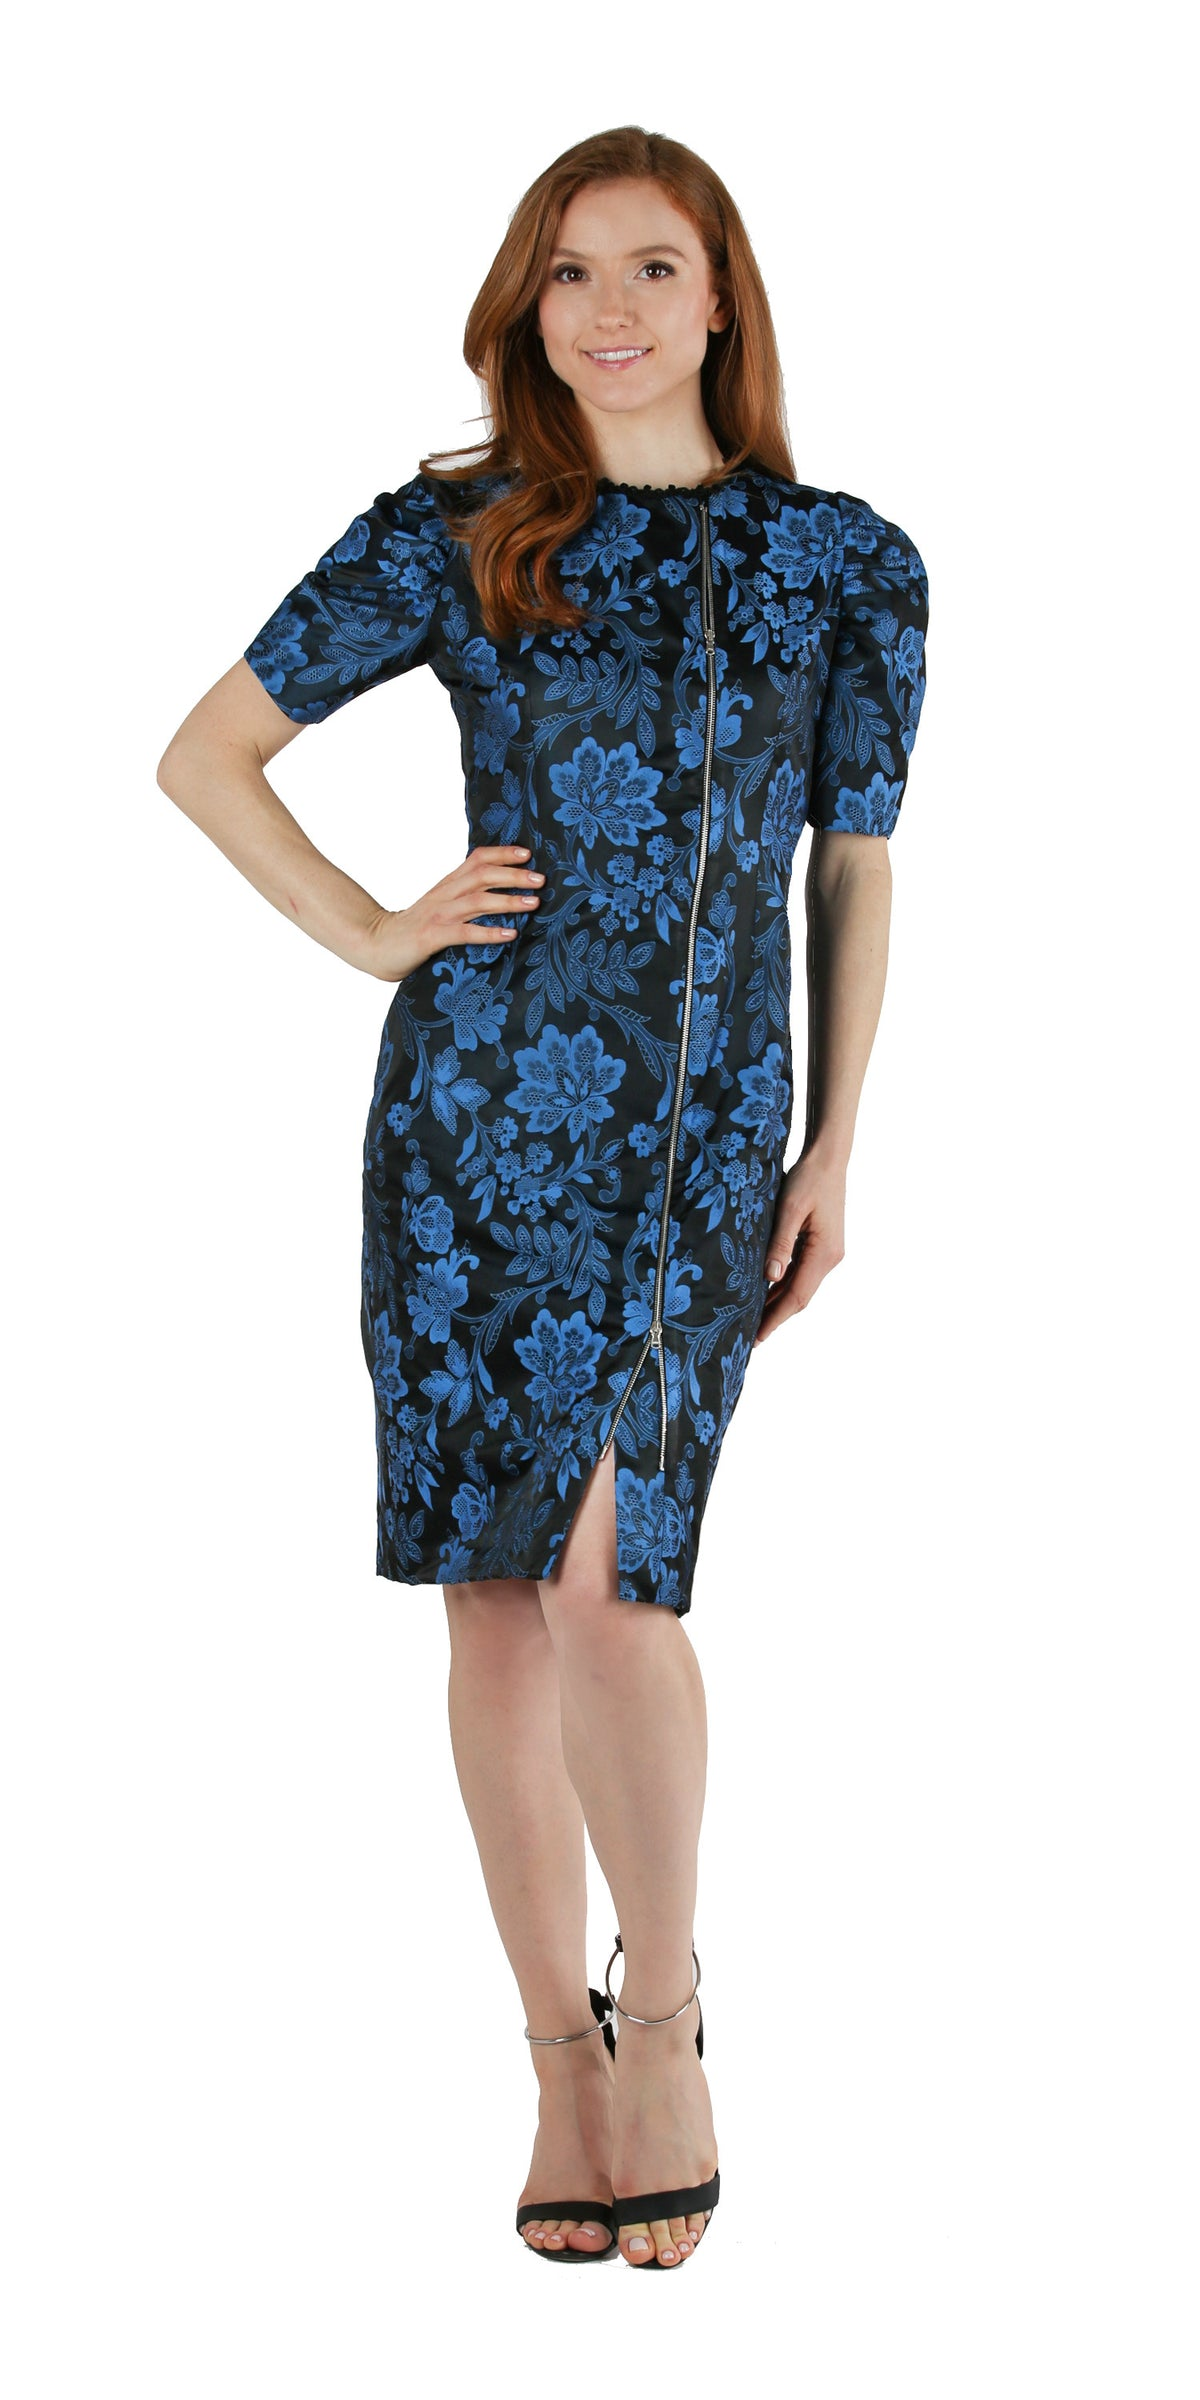 Blue & Black Floral Brocade Cocktail Dress